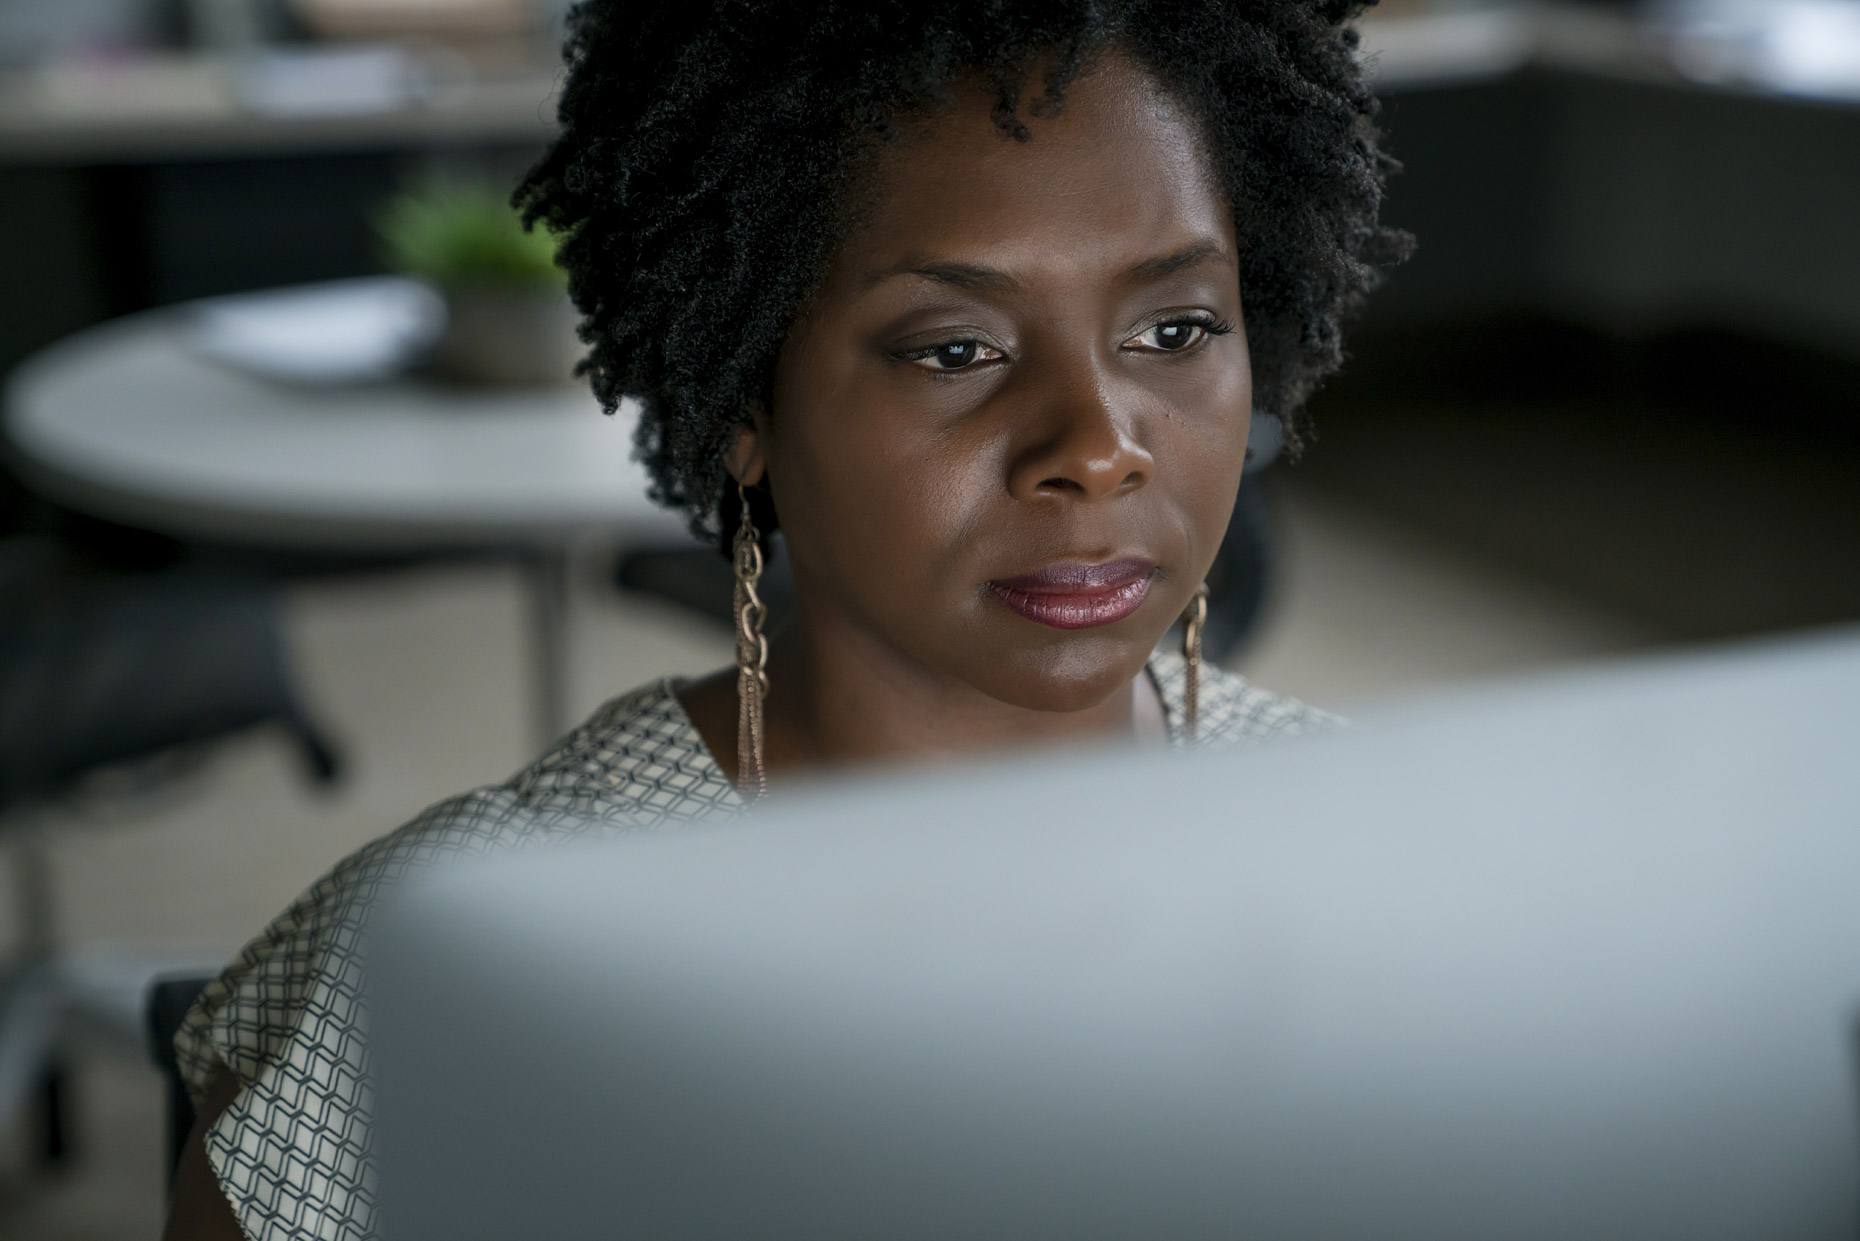 Close up of black woman looking at computer screen in the dark